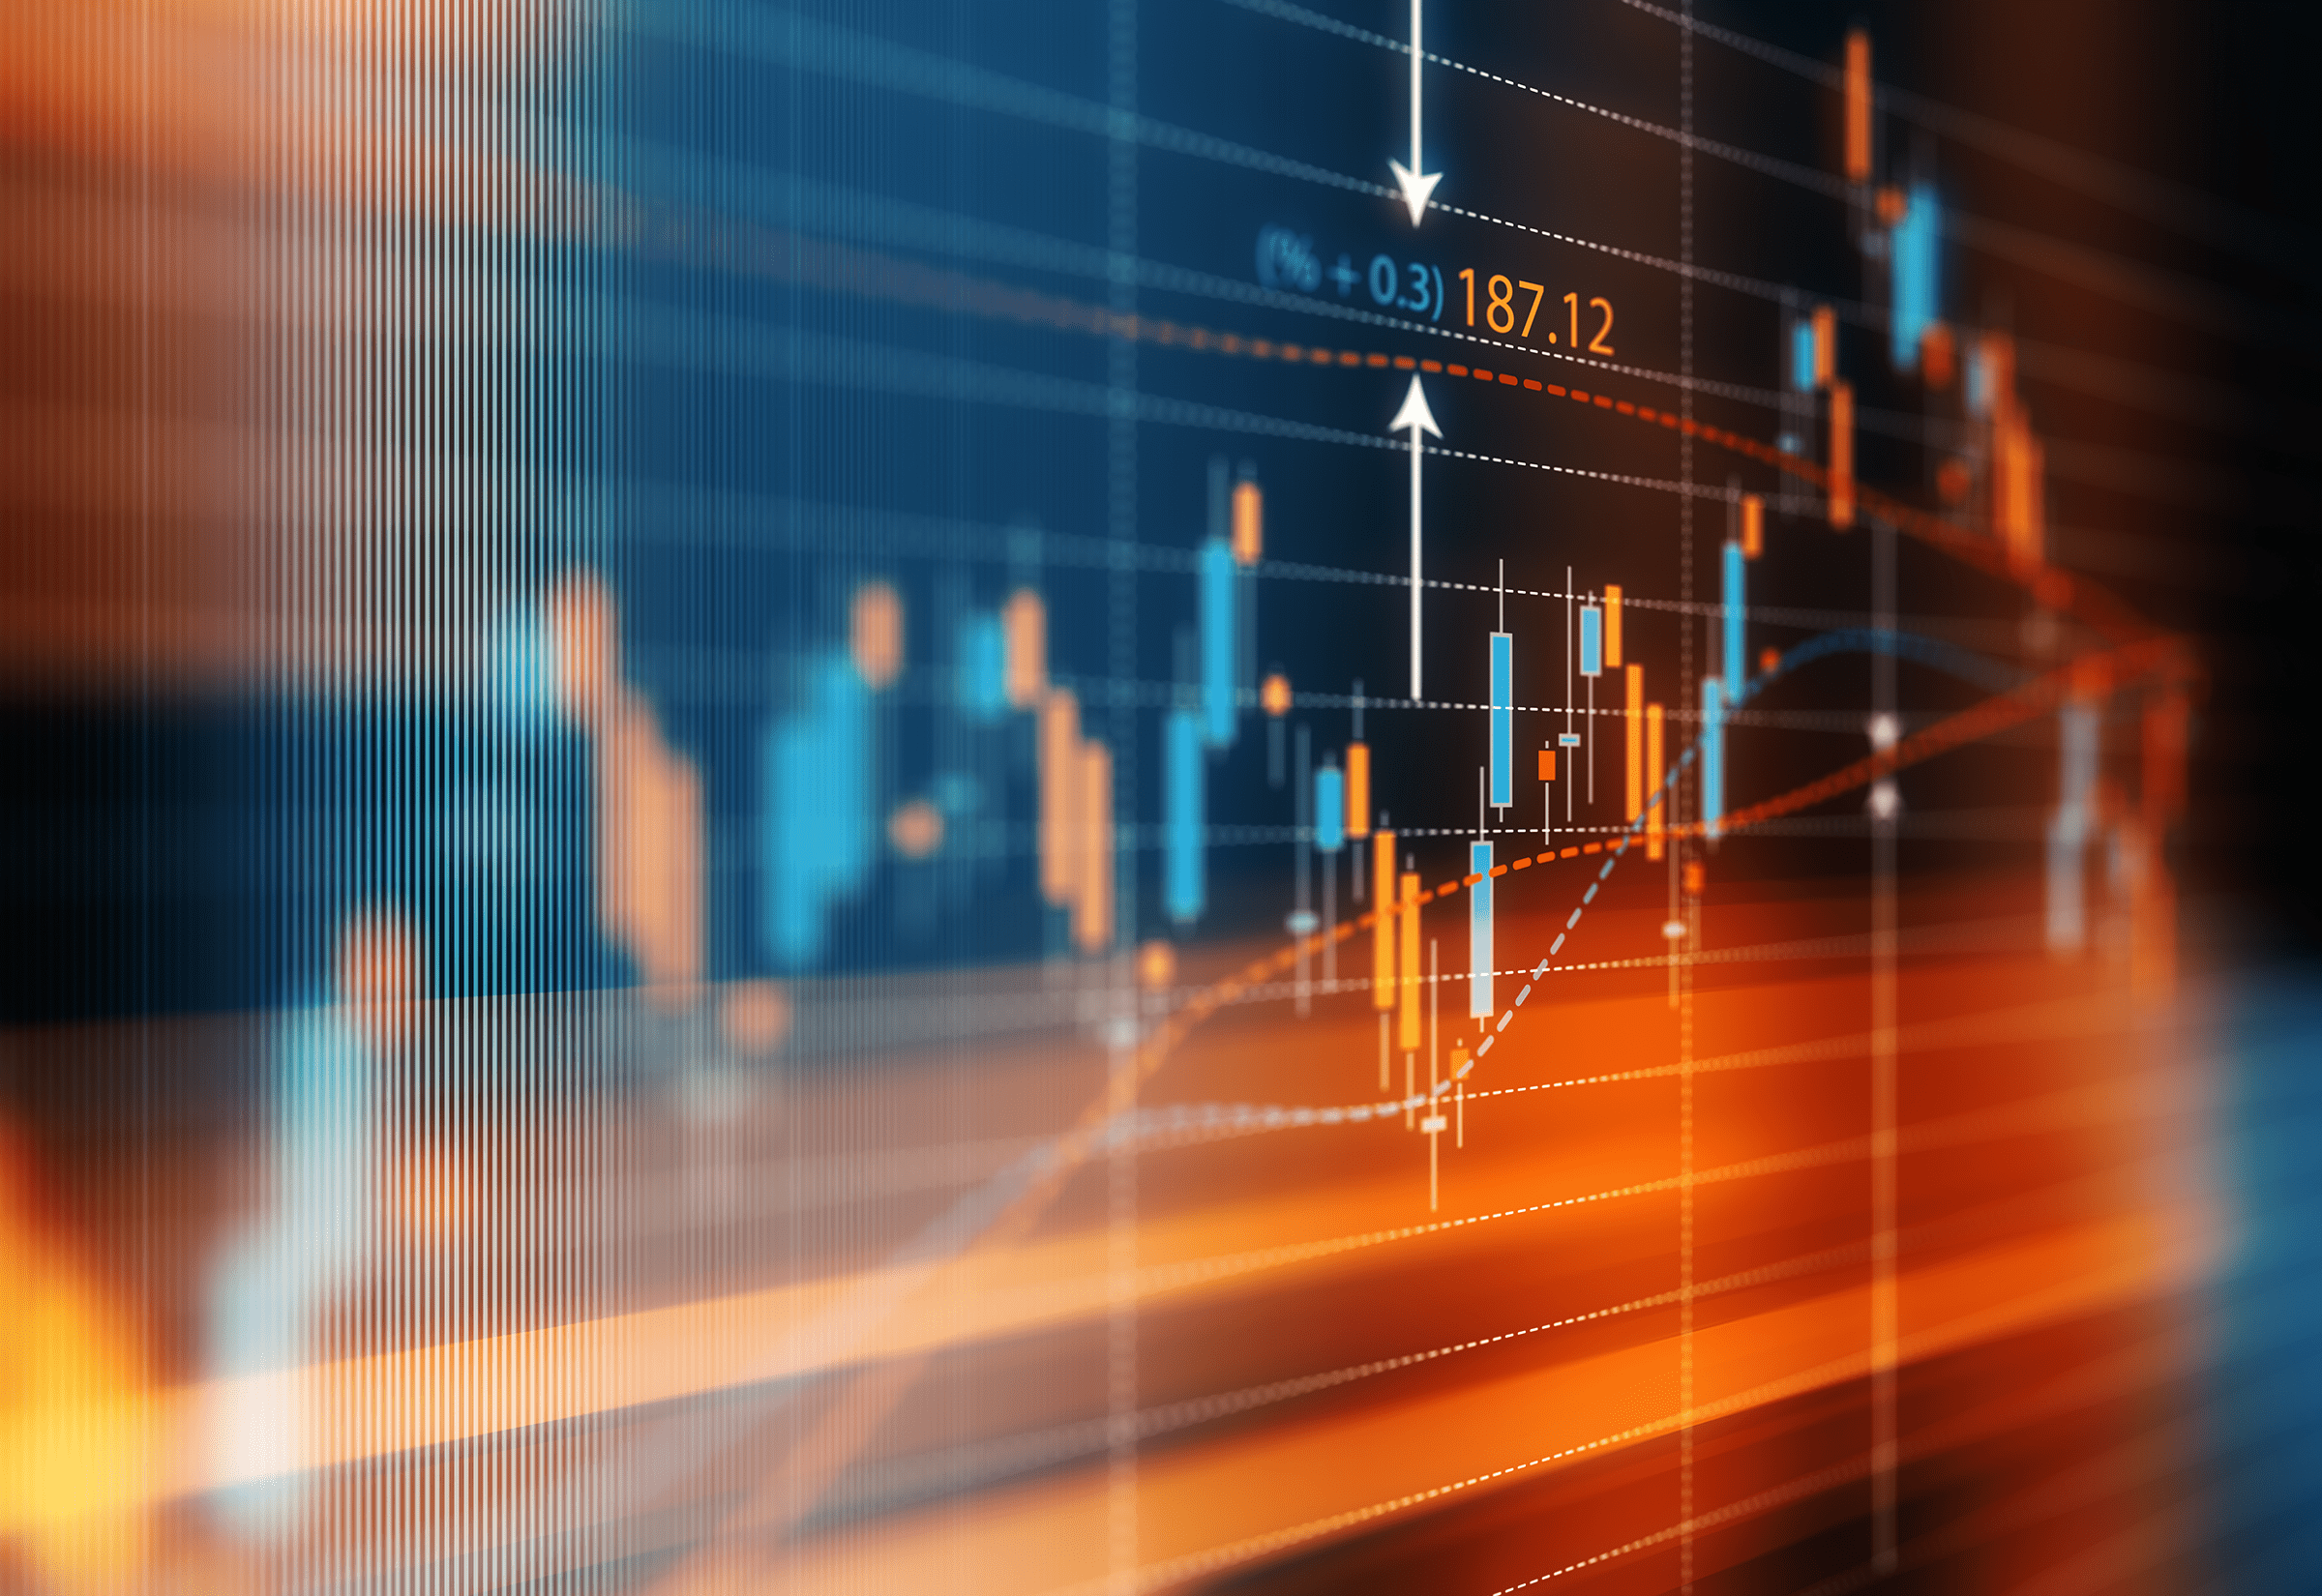 What is Aroxcapital?